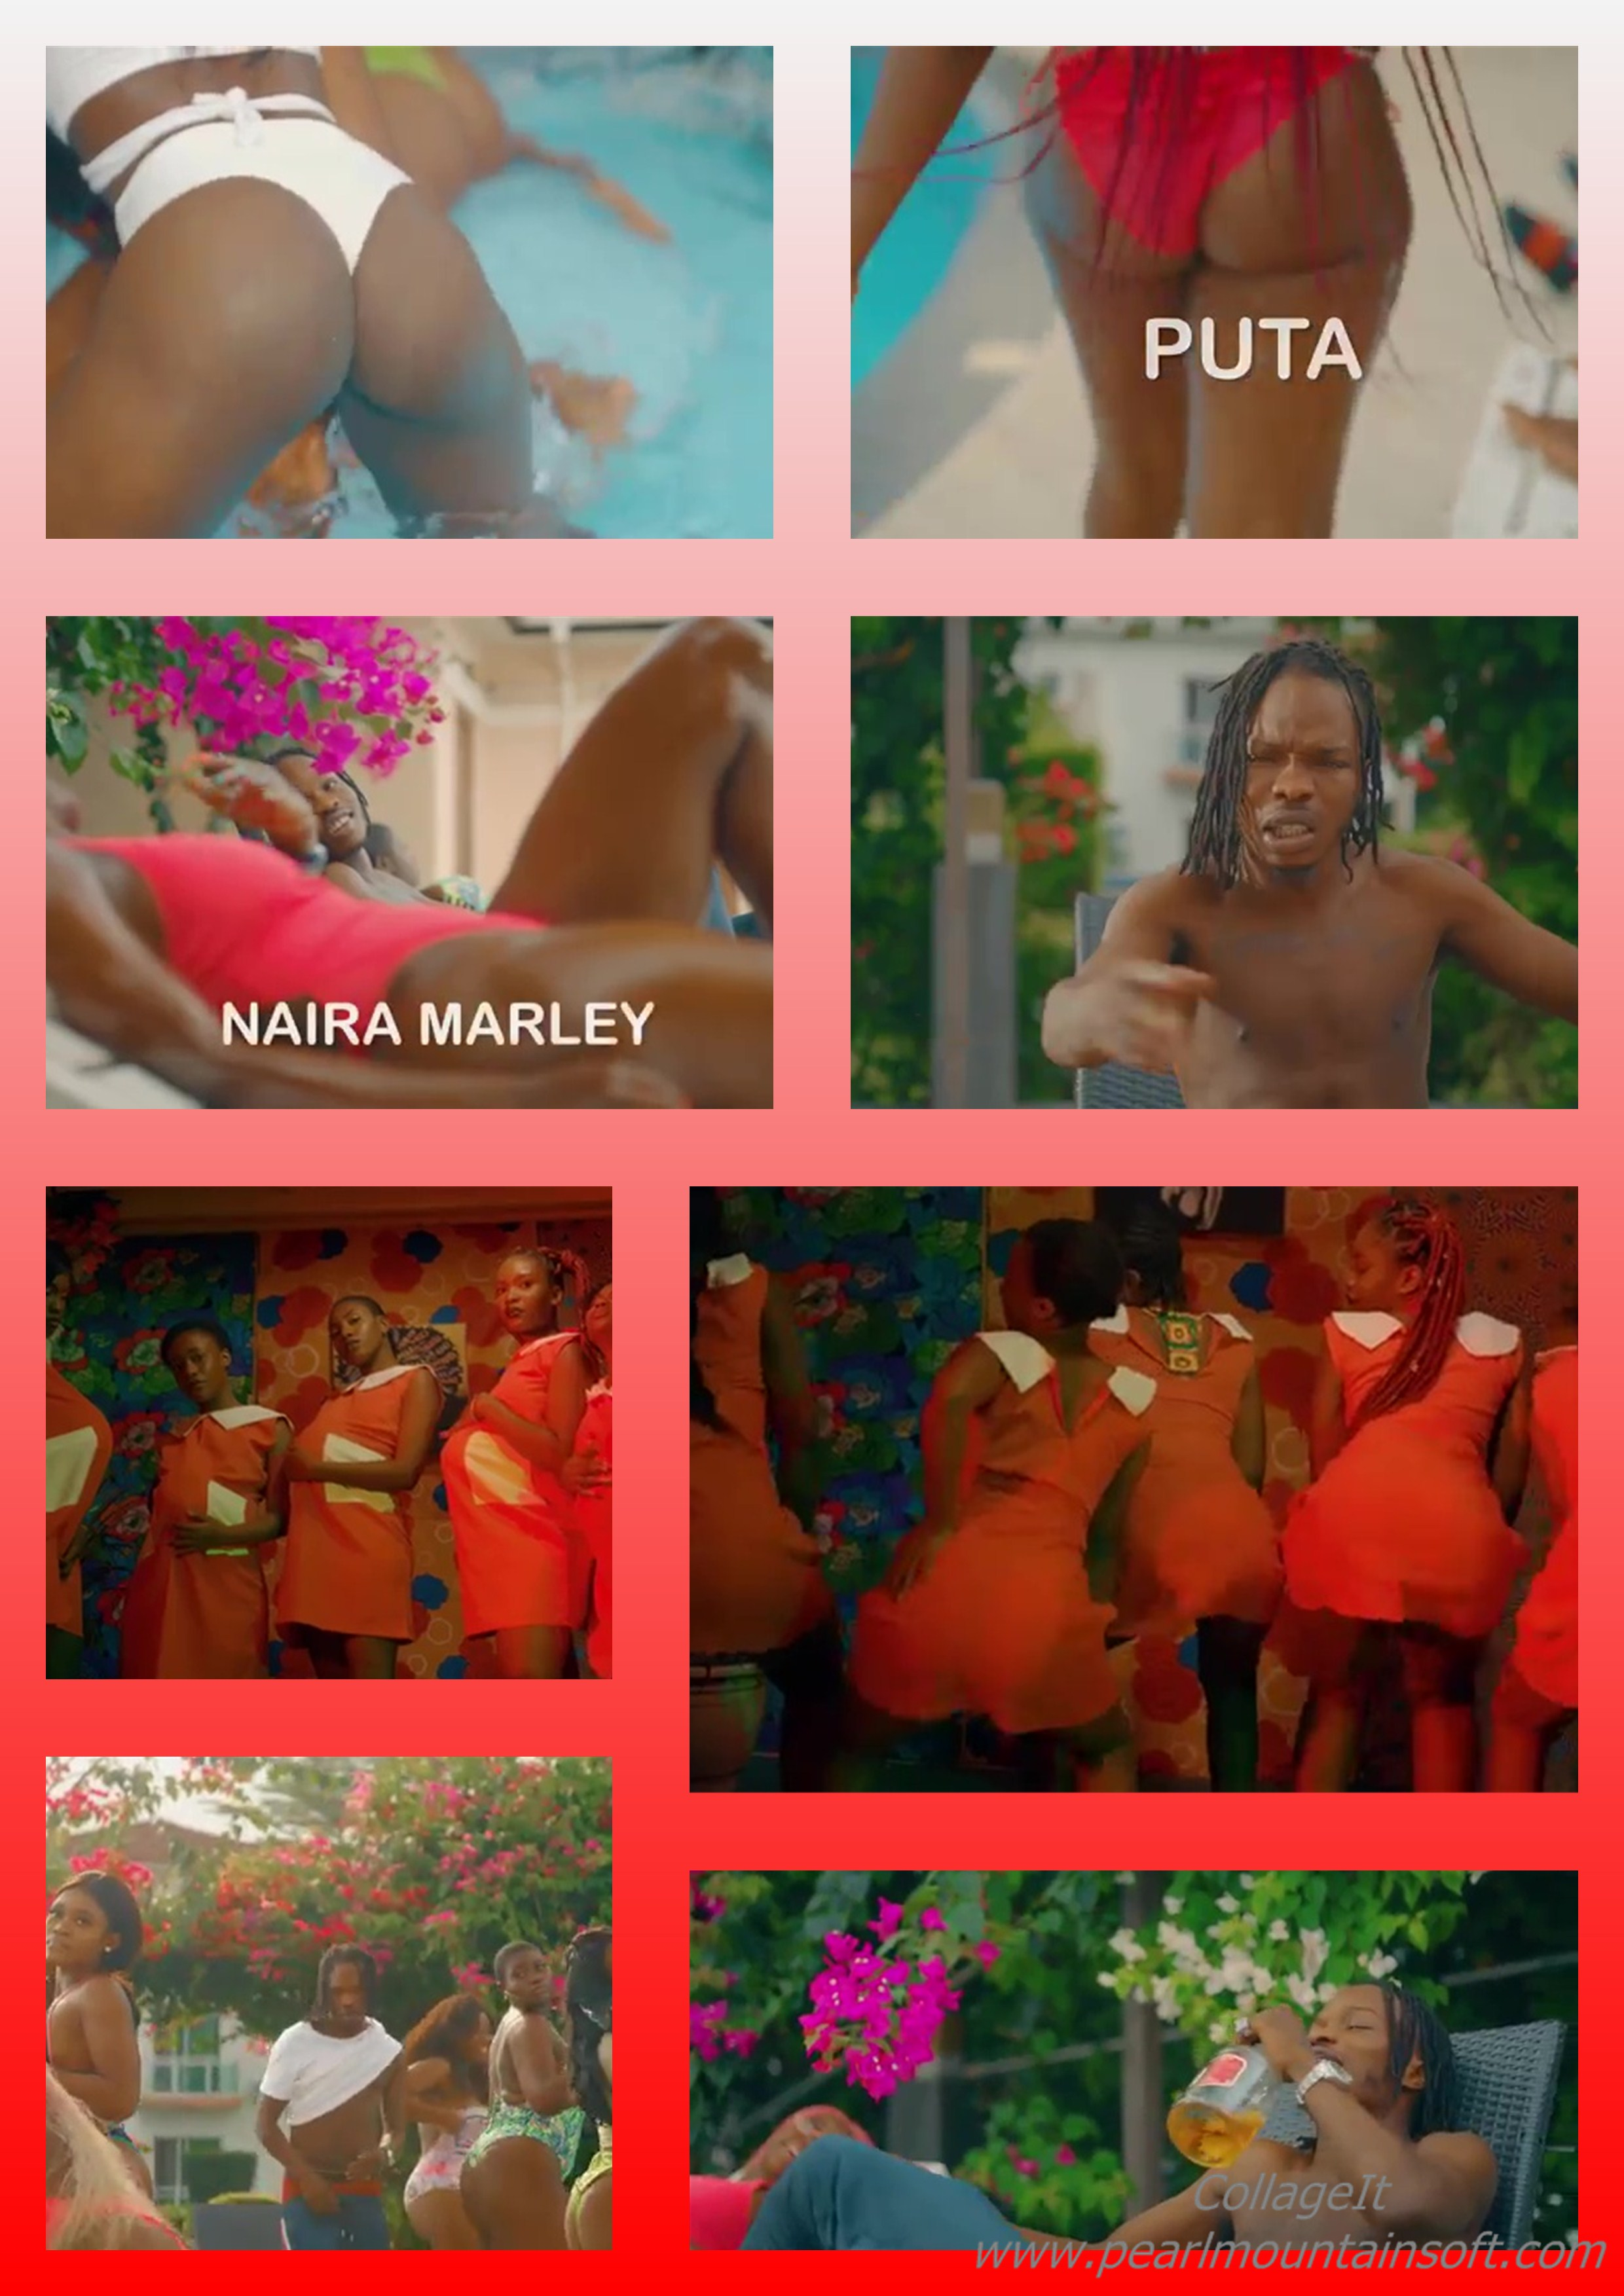 "(+LYRICS+TRANSLATION+MEANING) MUSIC REVIEW: PUTA BY NAIRA MARLEY ""THIS PUTA SONG MEANS GIRLS ARE PROSTITUTES"" +THIS IS AN ""IDI"" AS IN ""ASS"" DISPLAY VIDEO"